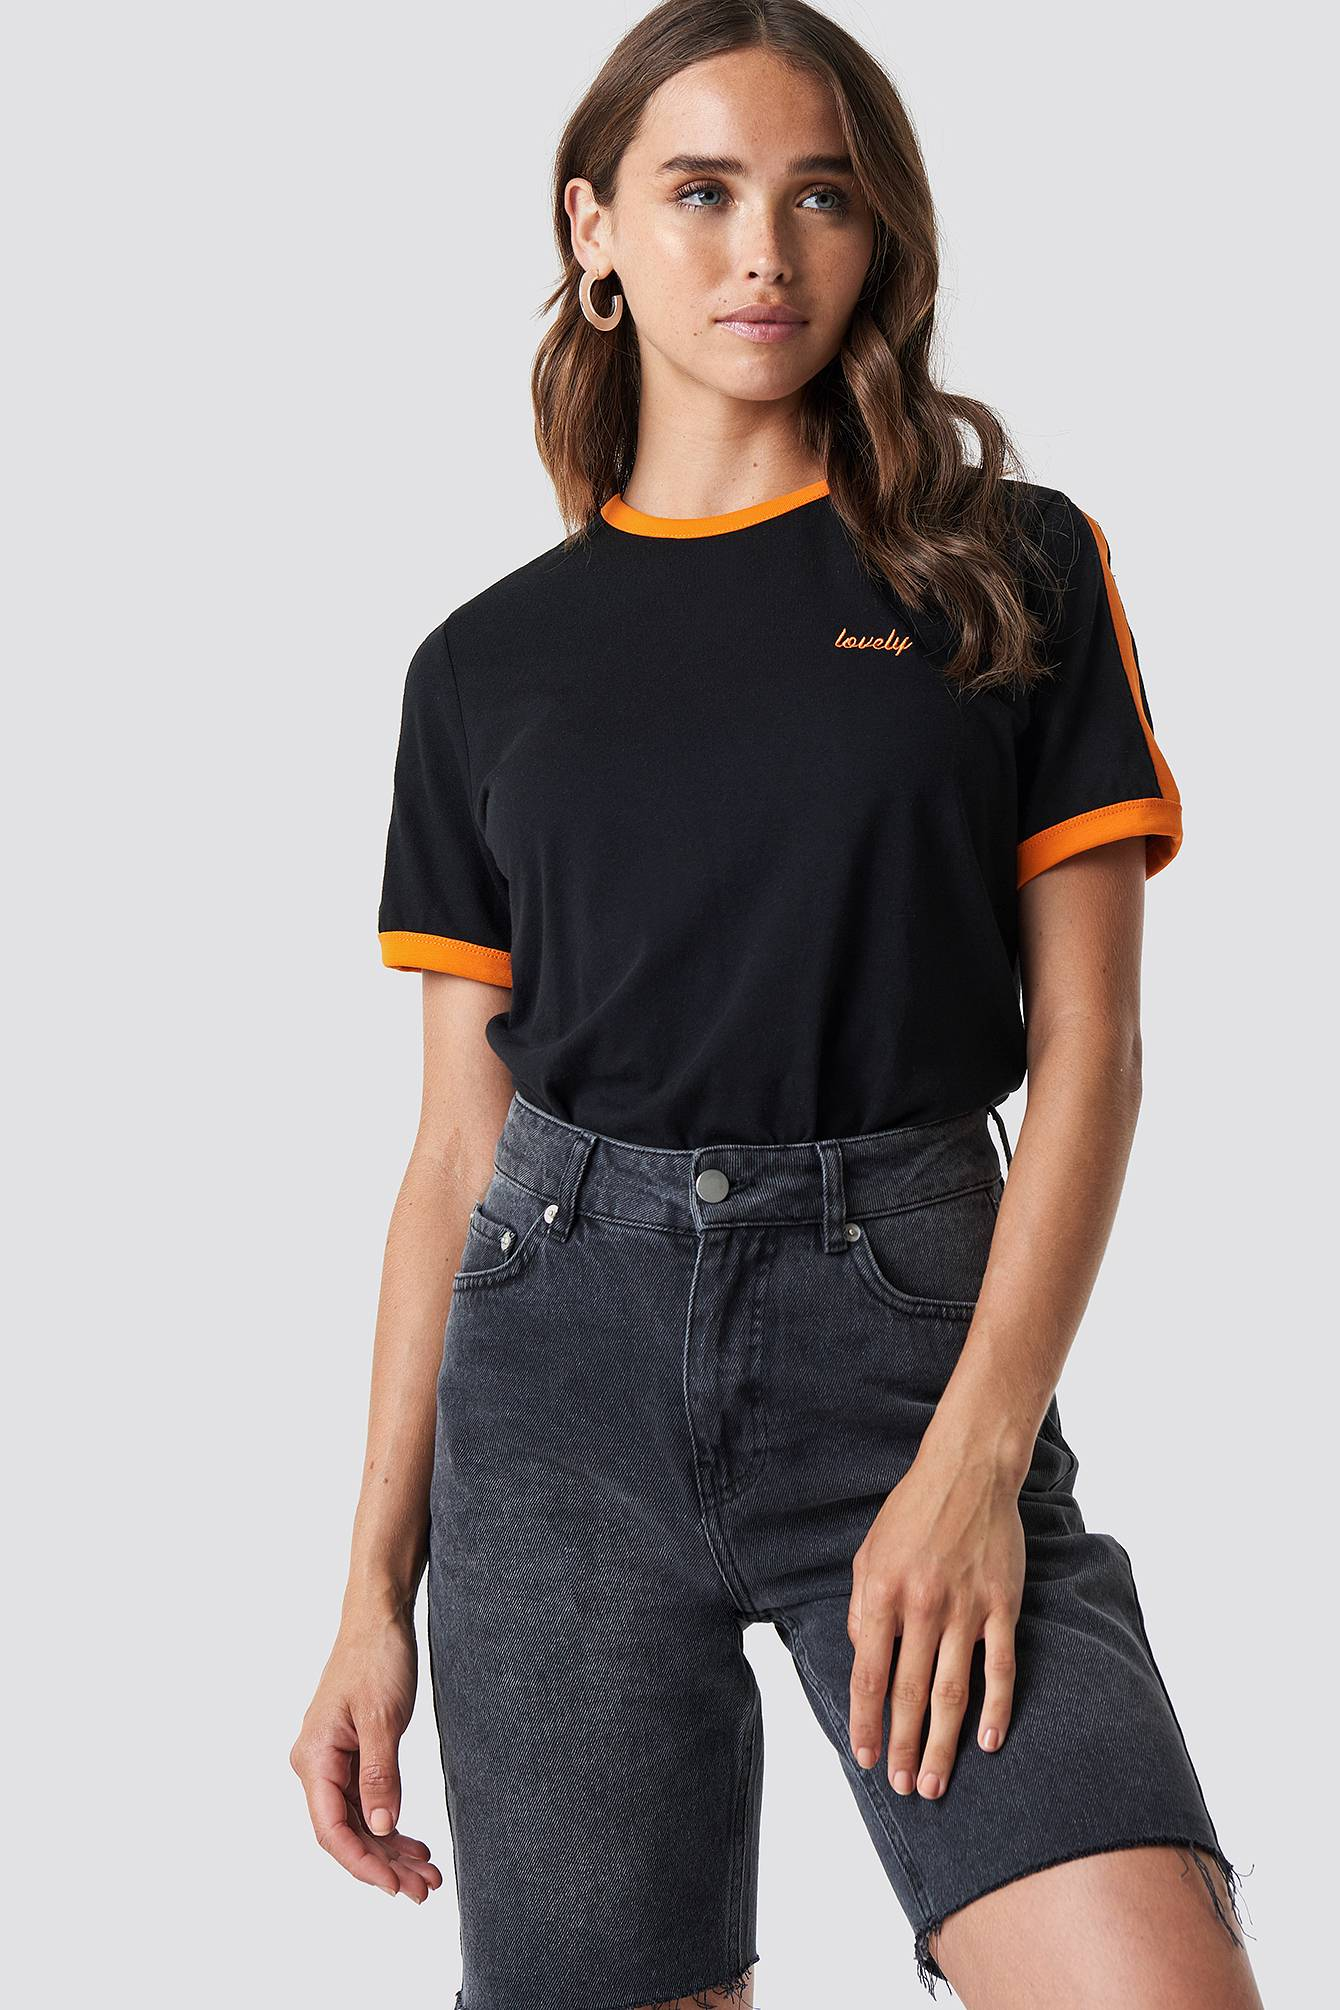 NA-KD Lovely Embroidery Tee - Black